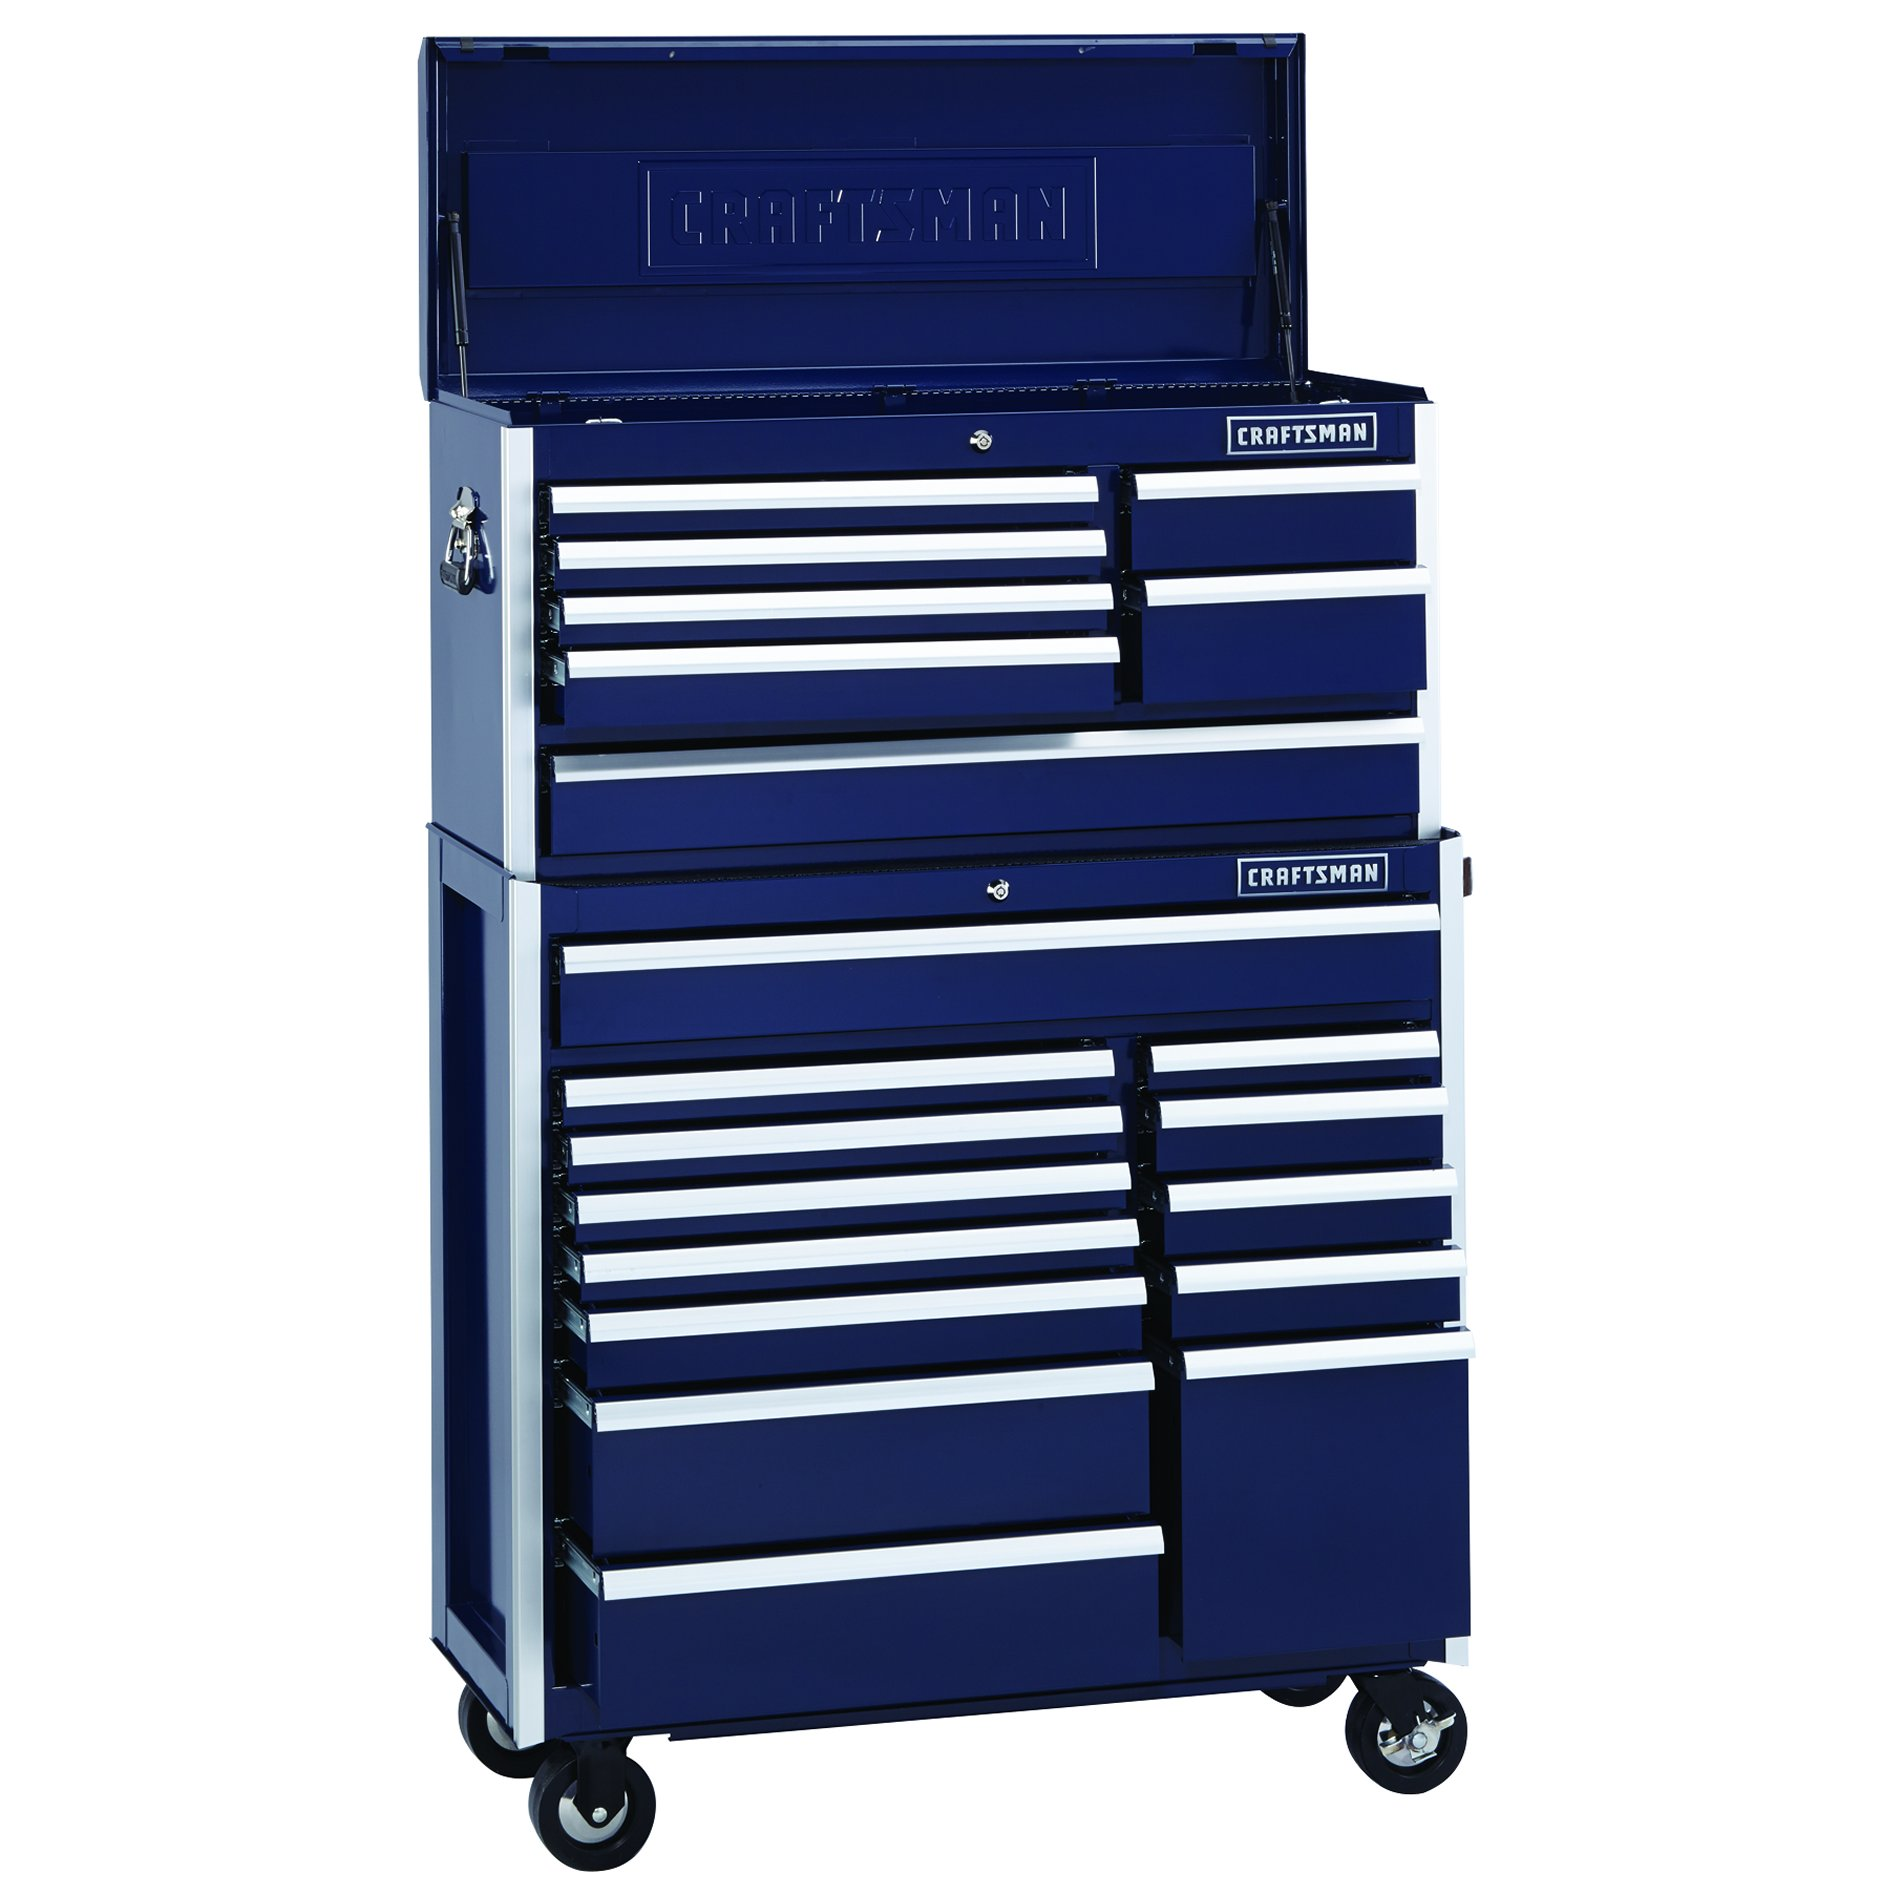 Craftsman EDGE Series 40-In. 7-Drawer Premium Heavy-Duty Ball-Bearing Top Chest - Midnight Blue